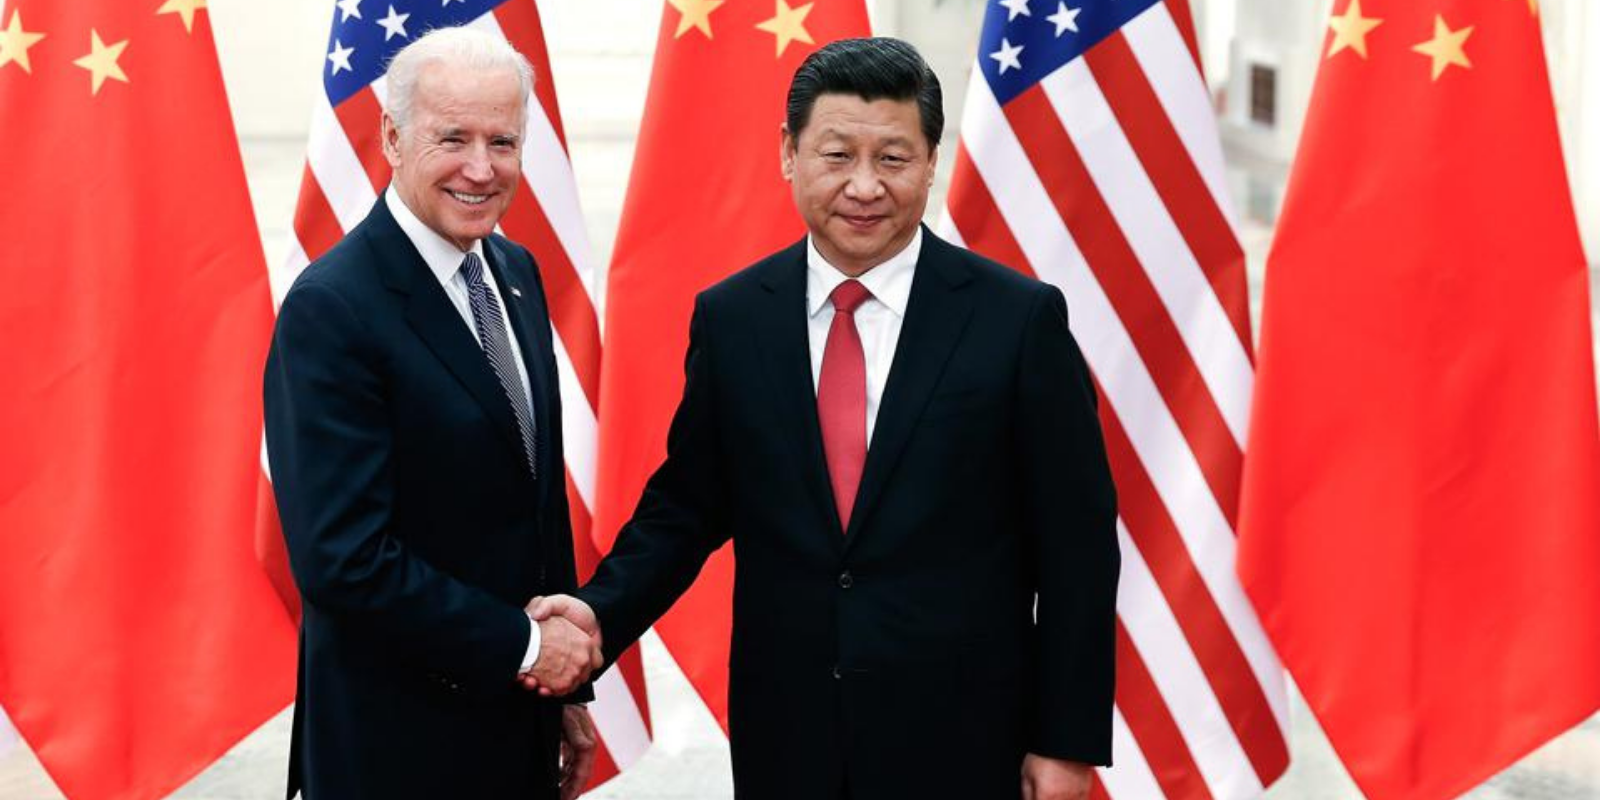 Chinese state media urges Biden to hurry up and 'fix ties' with communist regime